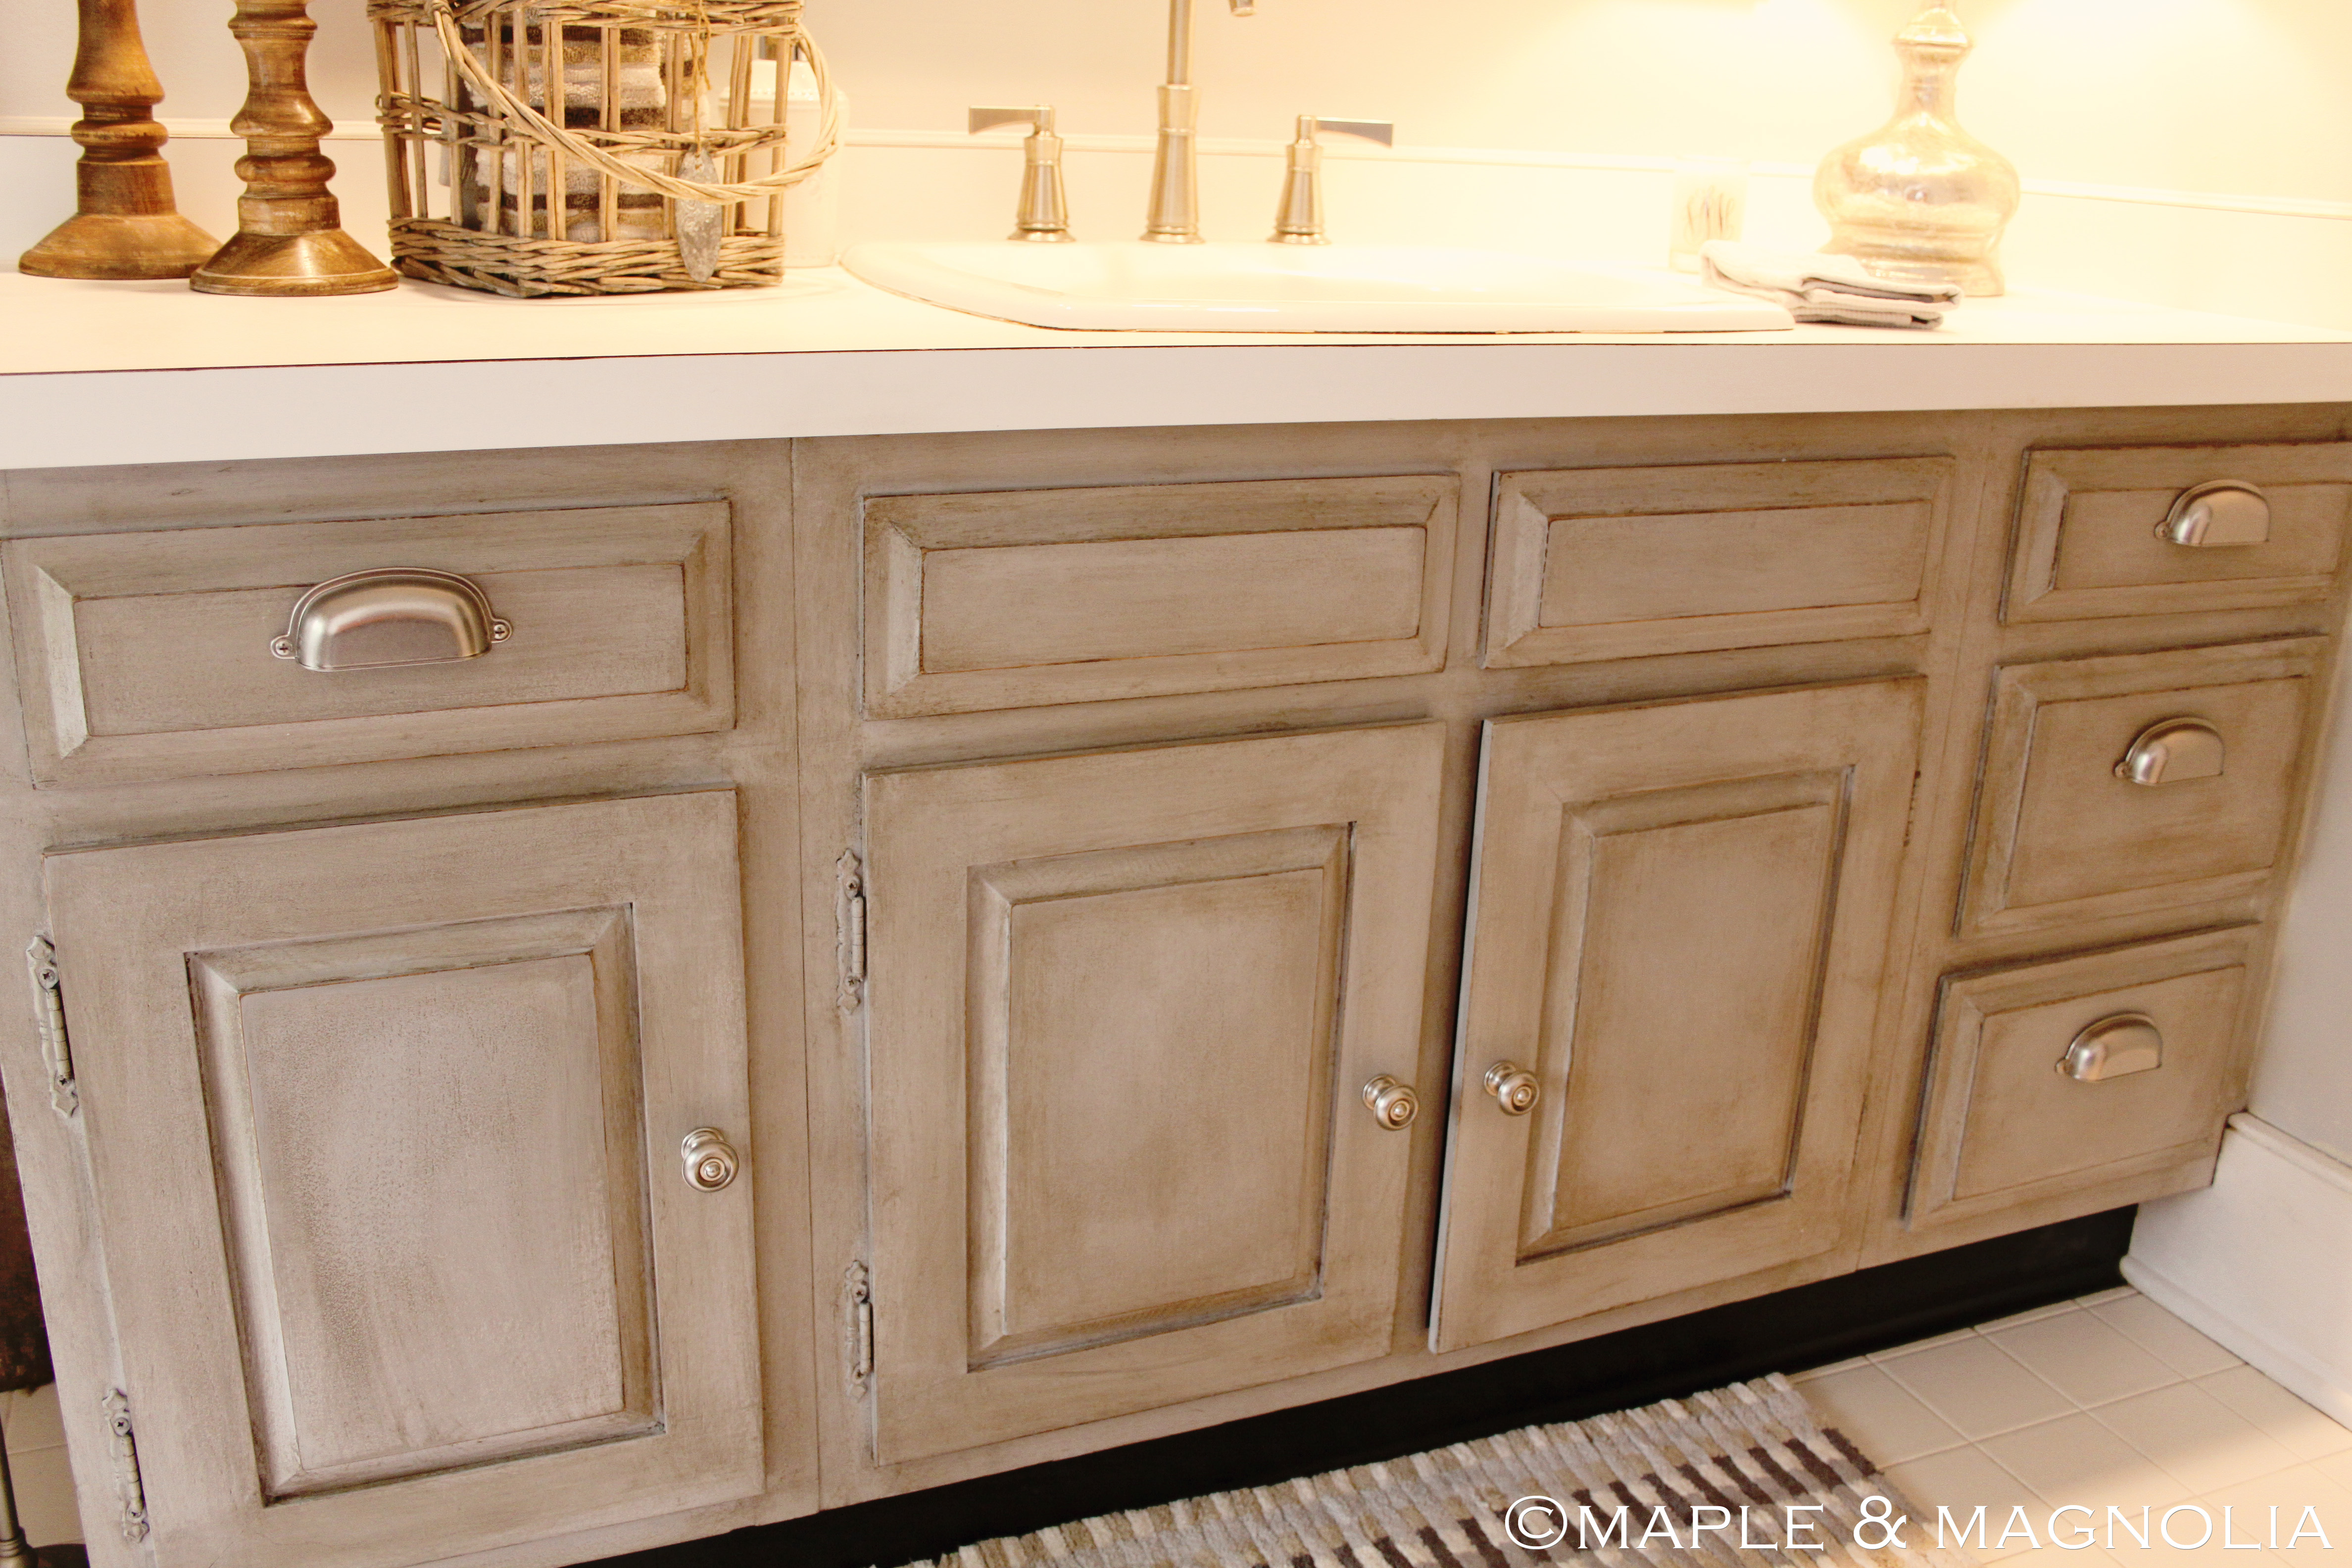 Annie sloan chalk paint bathroom cabinets - So